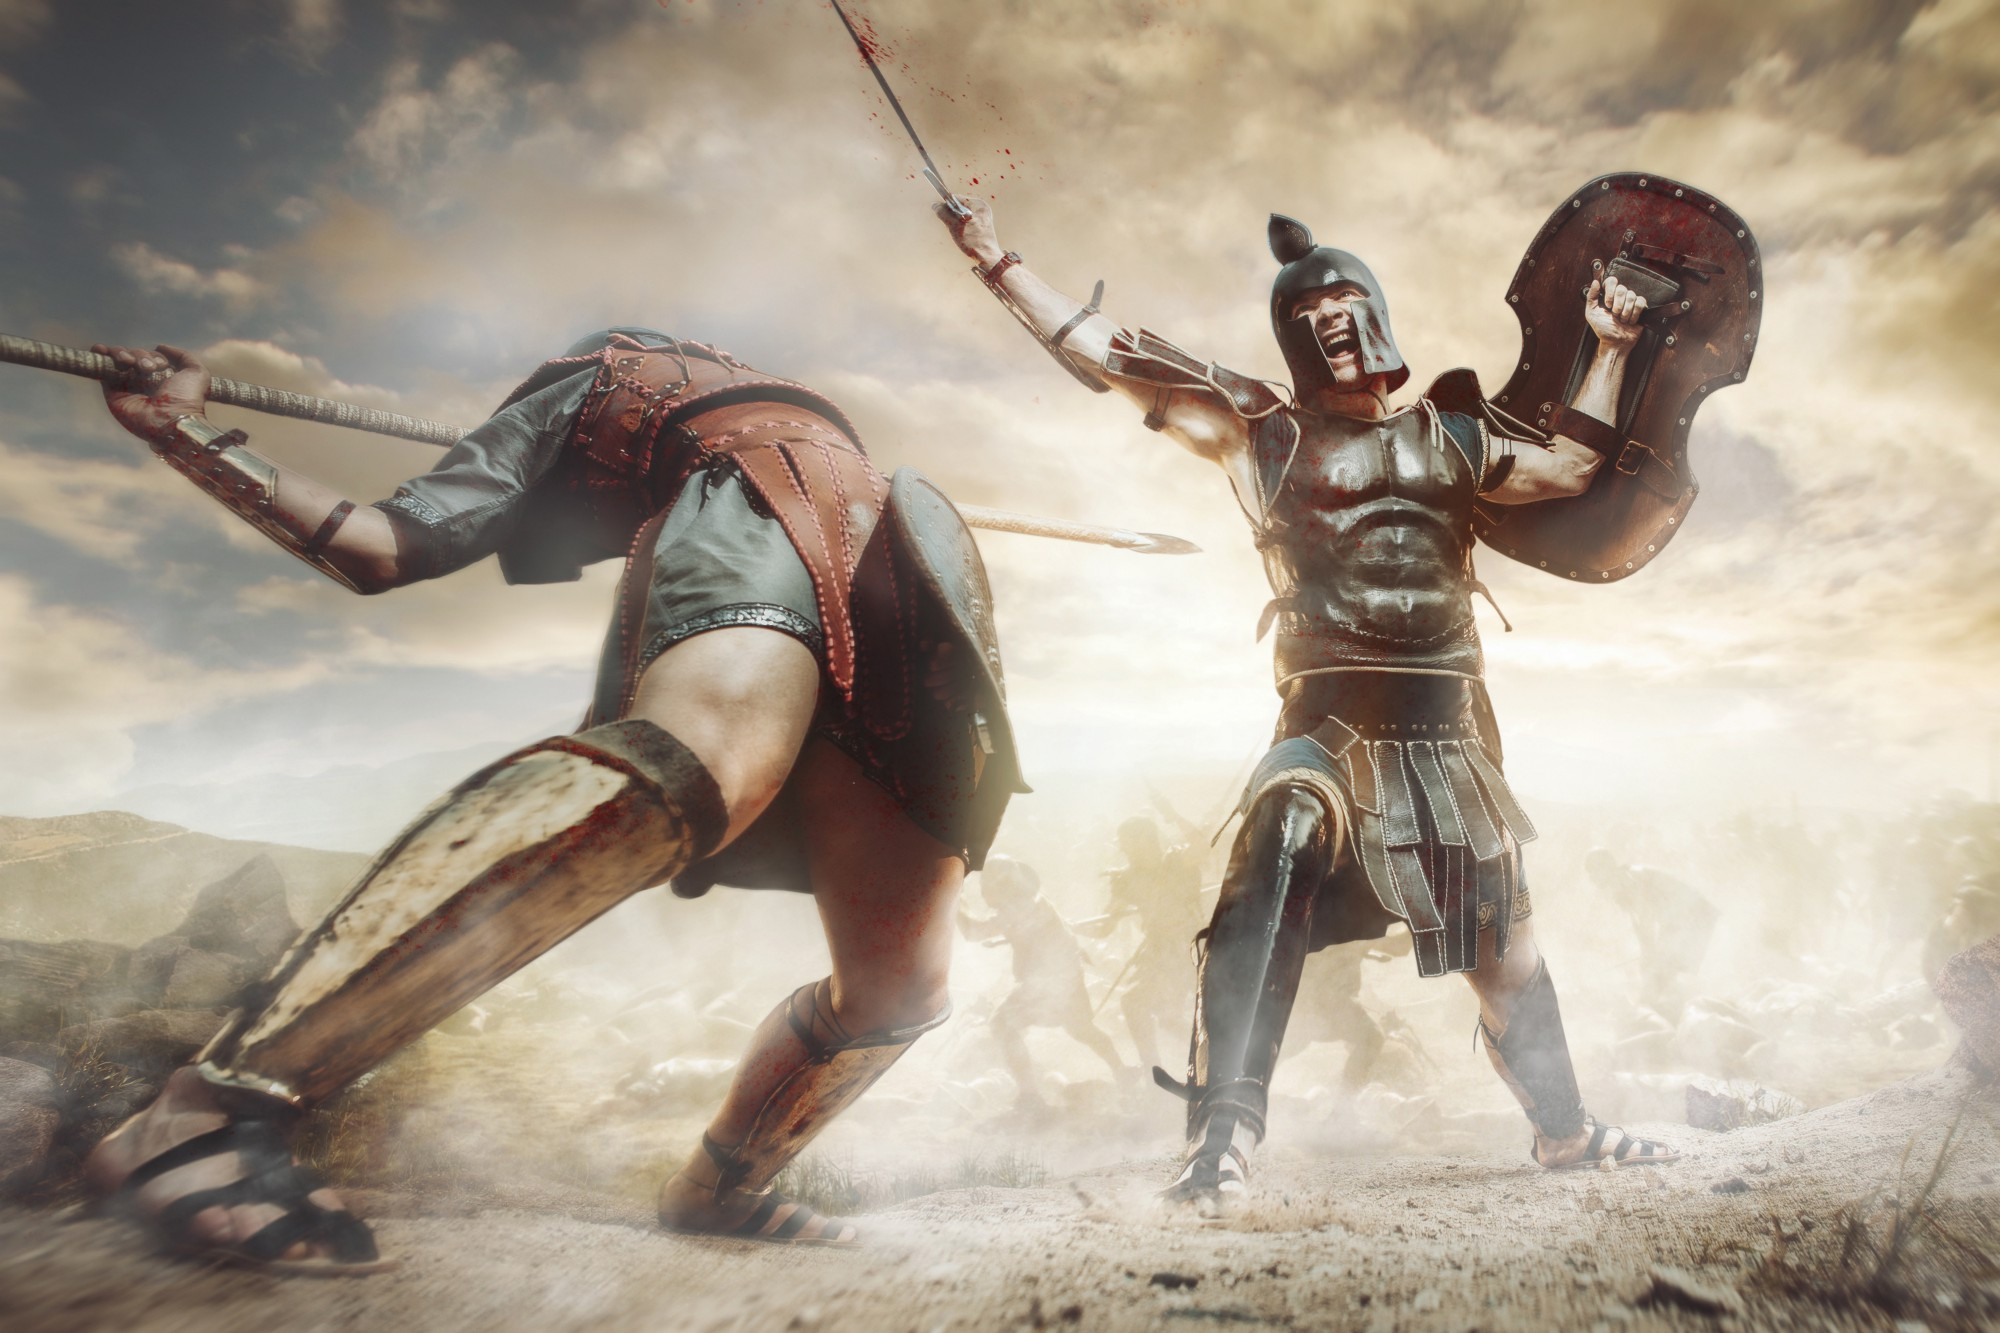 Two gladiators fighting while holding spears and shields.